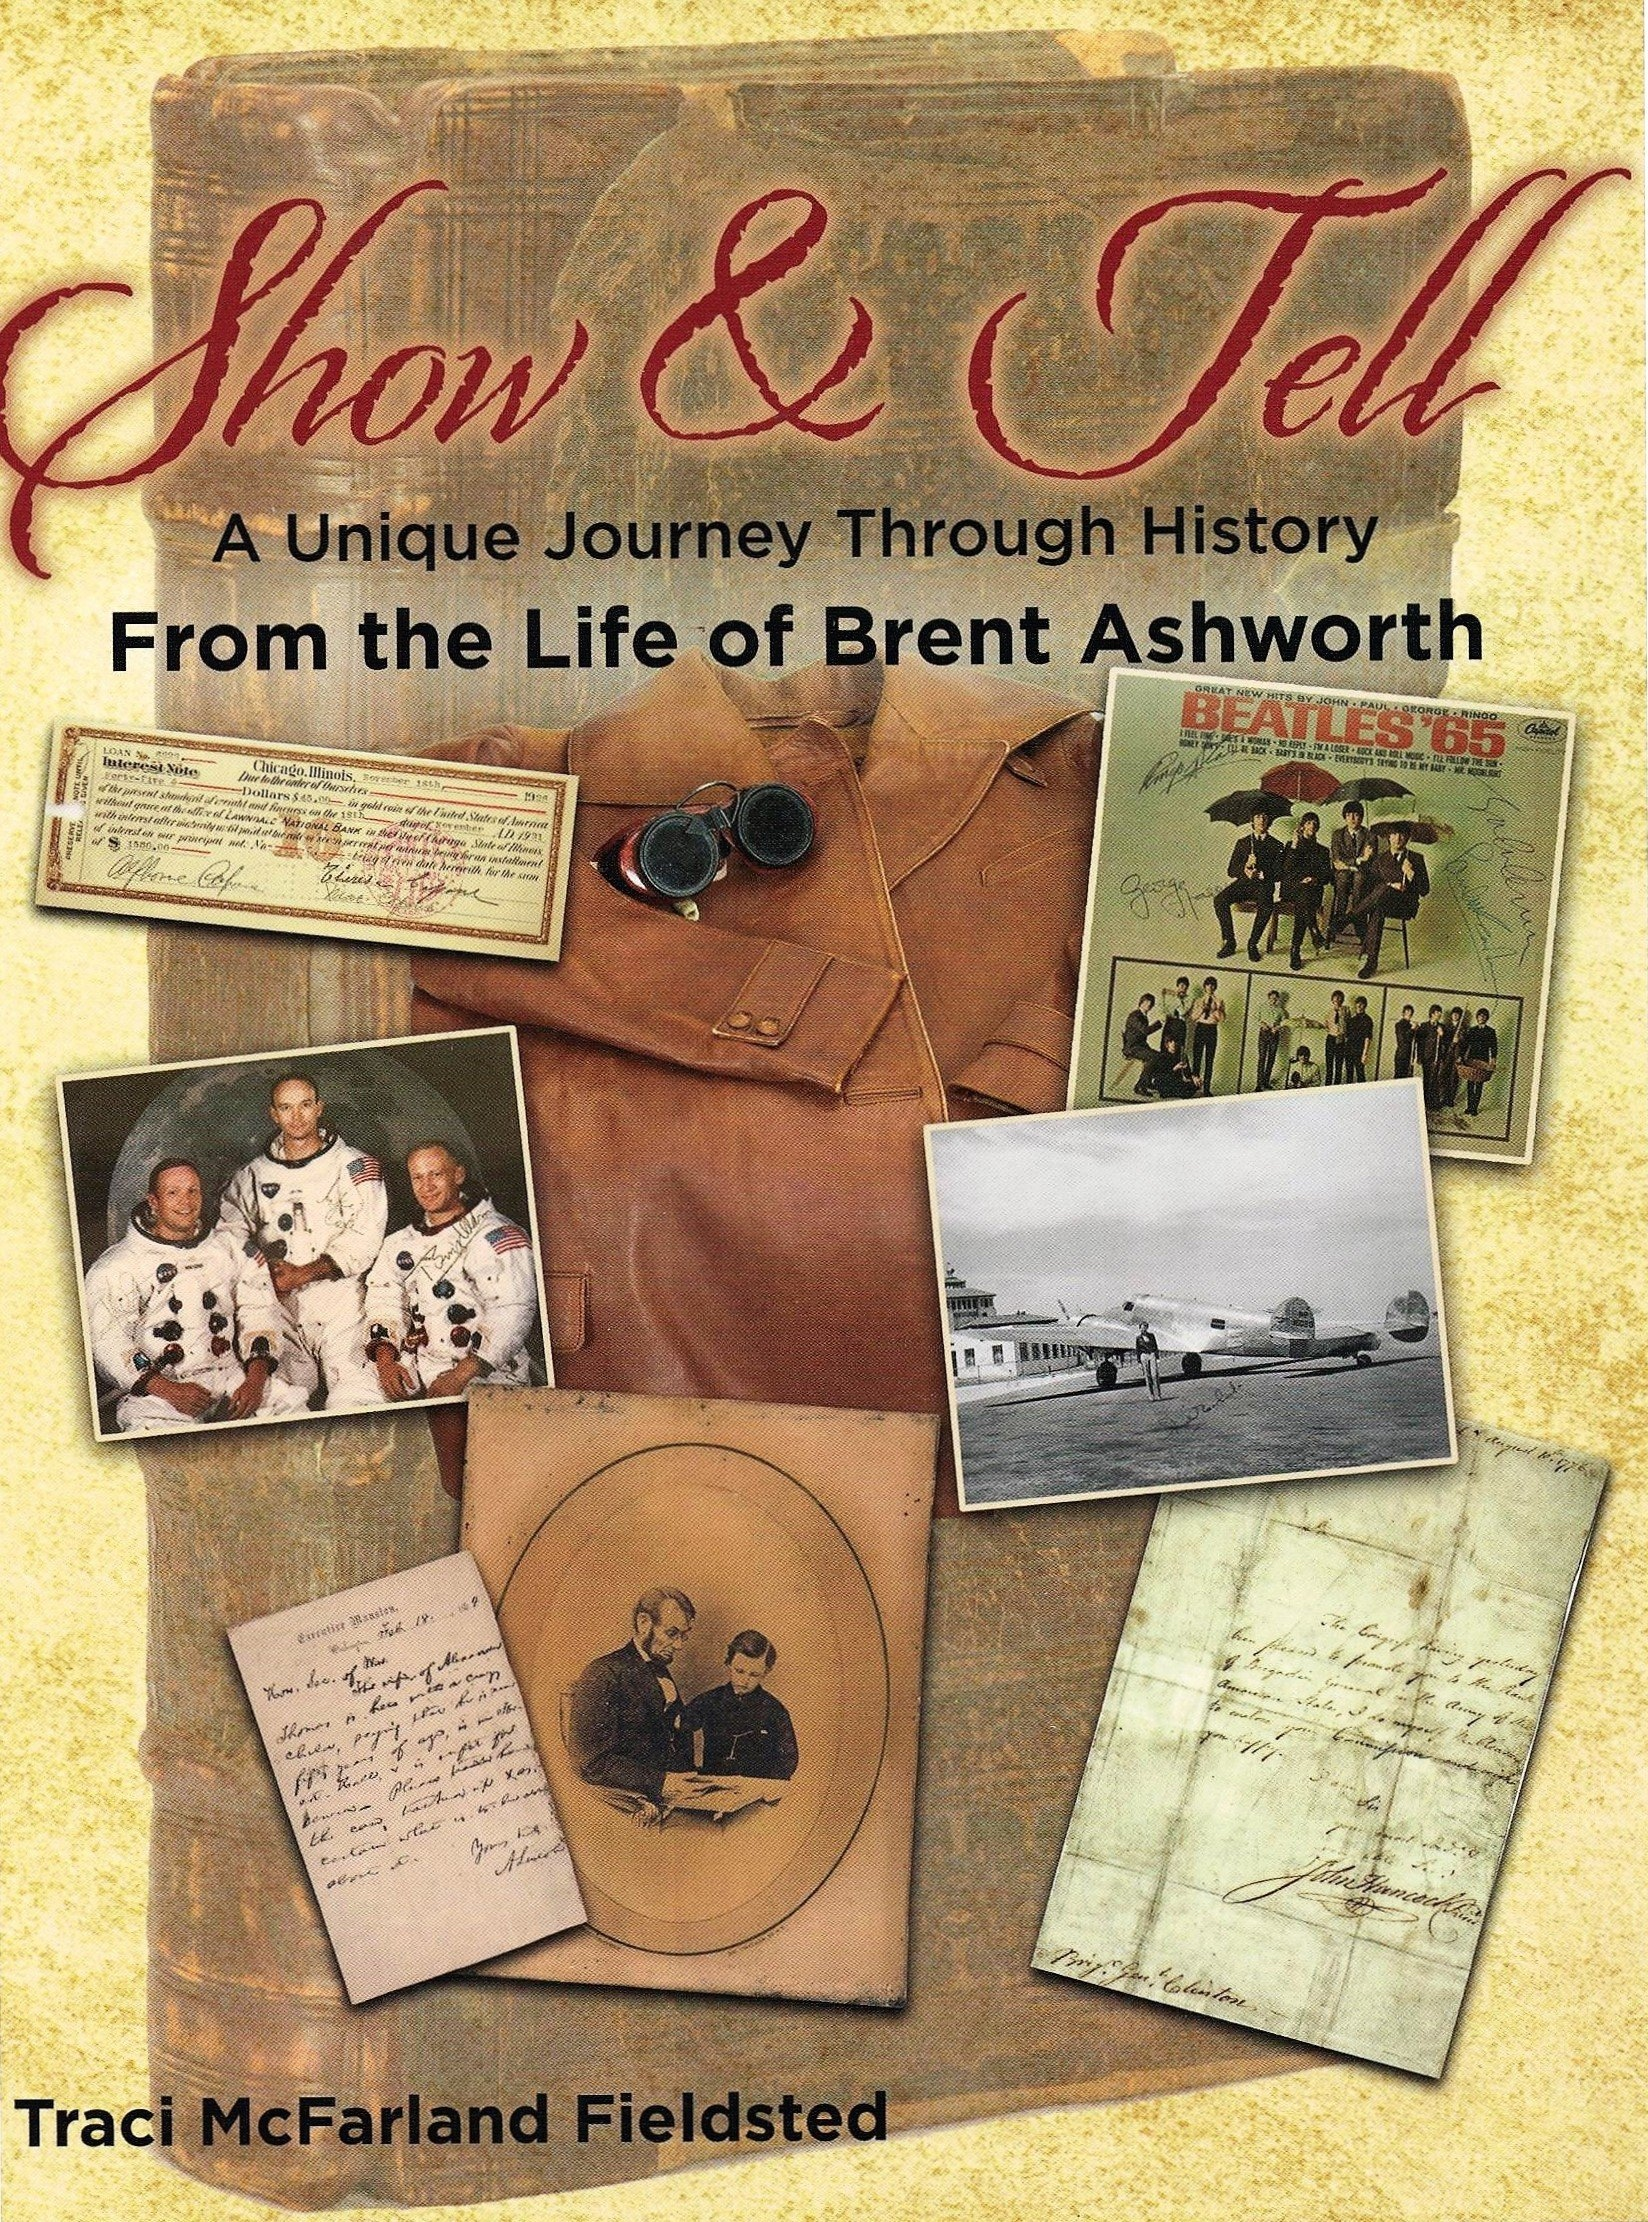 Image for Show and Tell, A Unique Journey Through History From the Life of Brent Ashworth